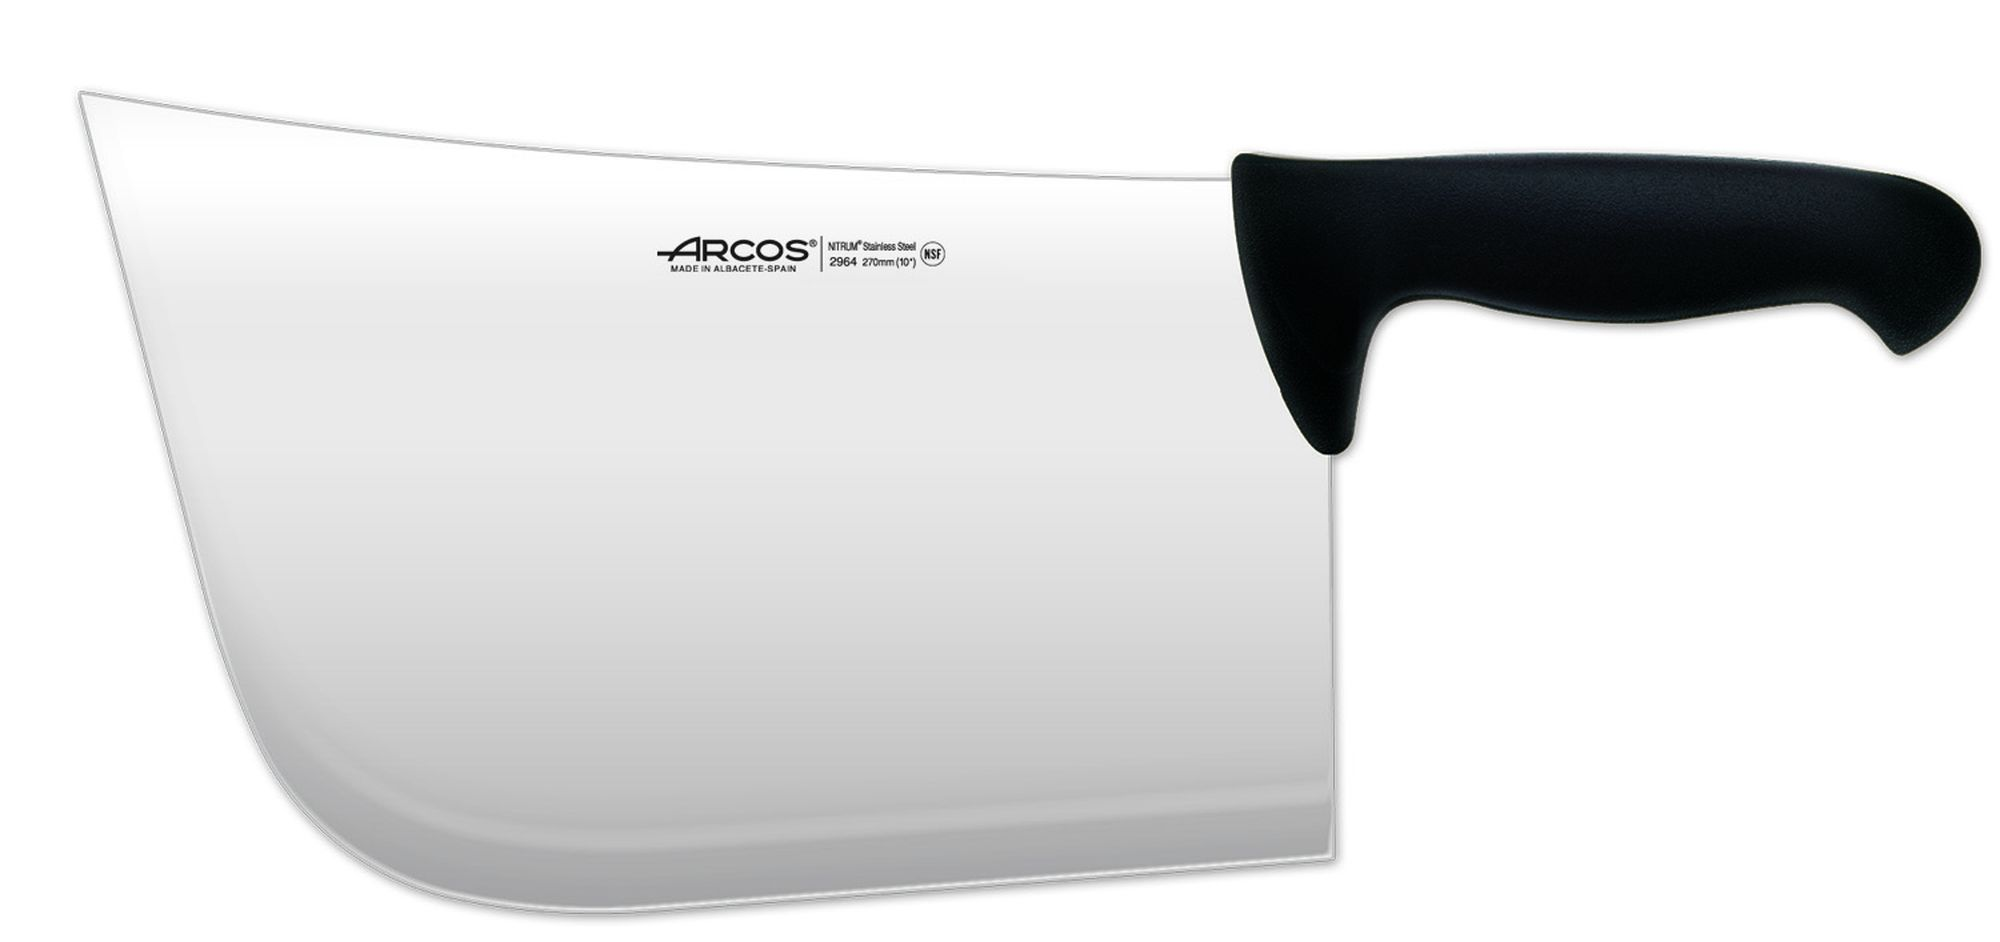 Cleaver Arcos ref.: 296425